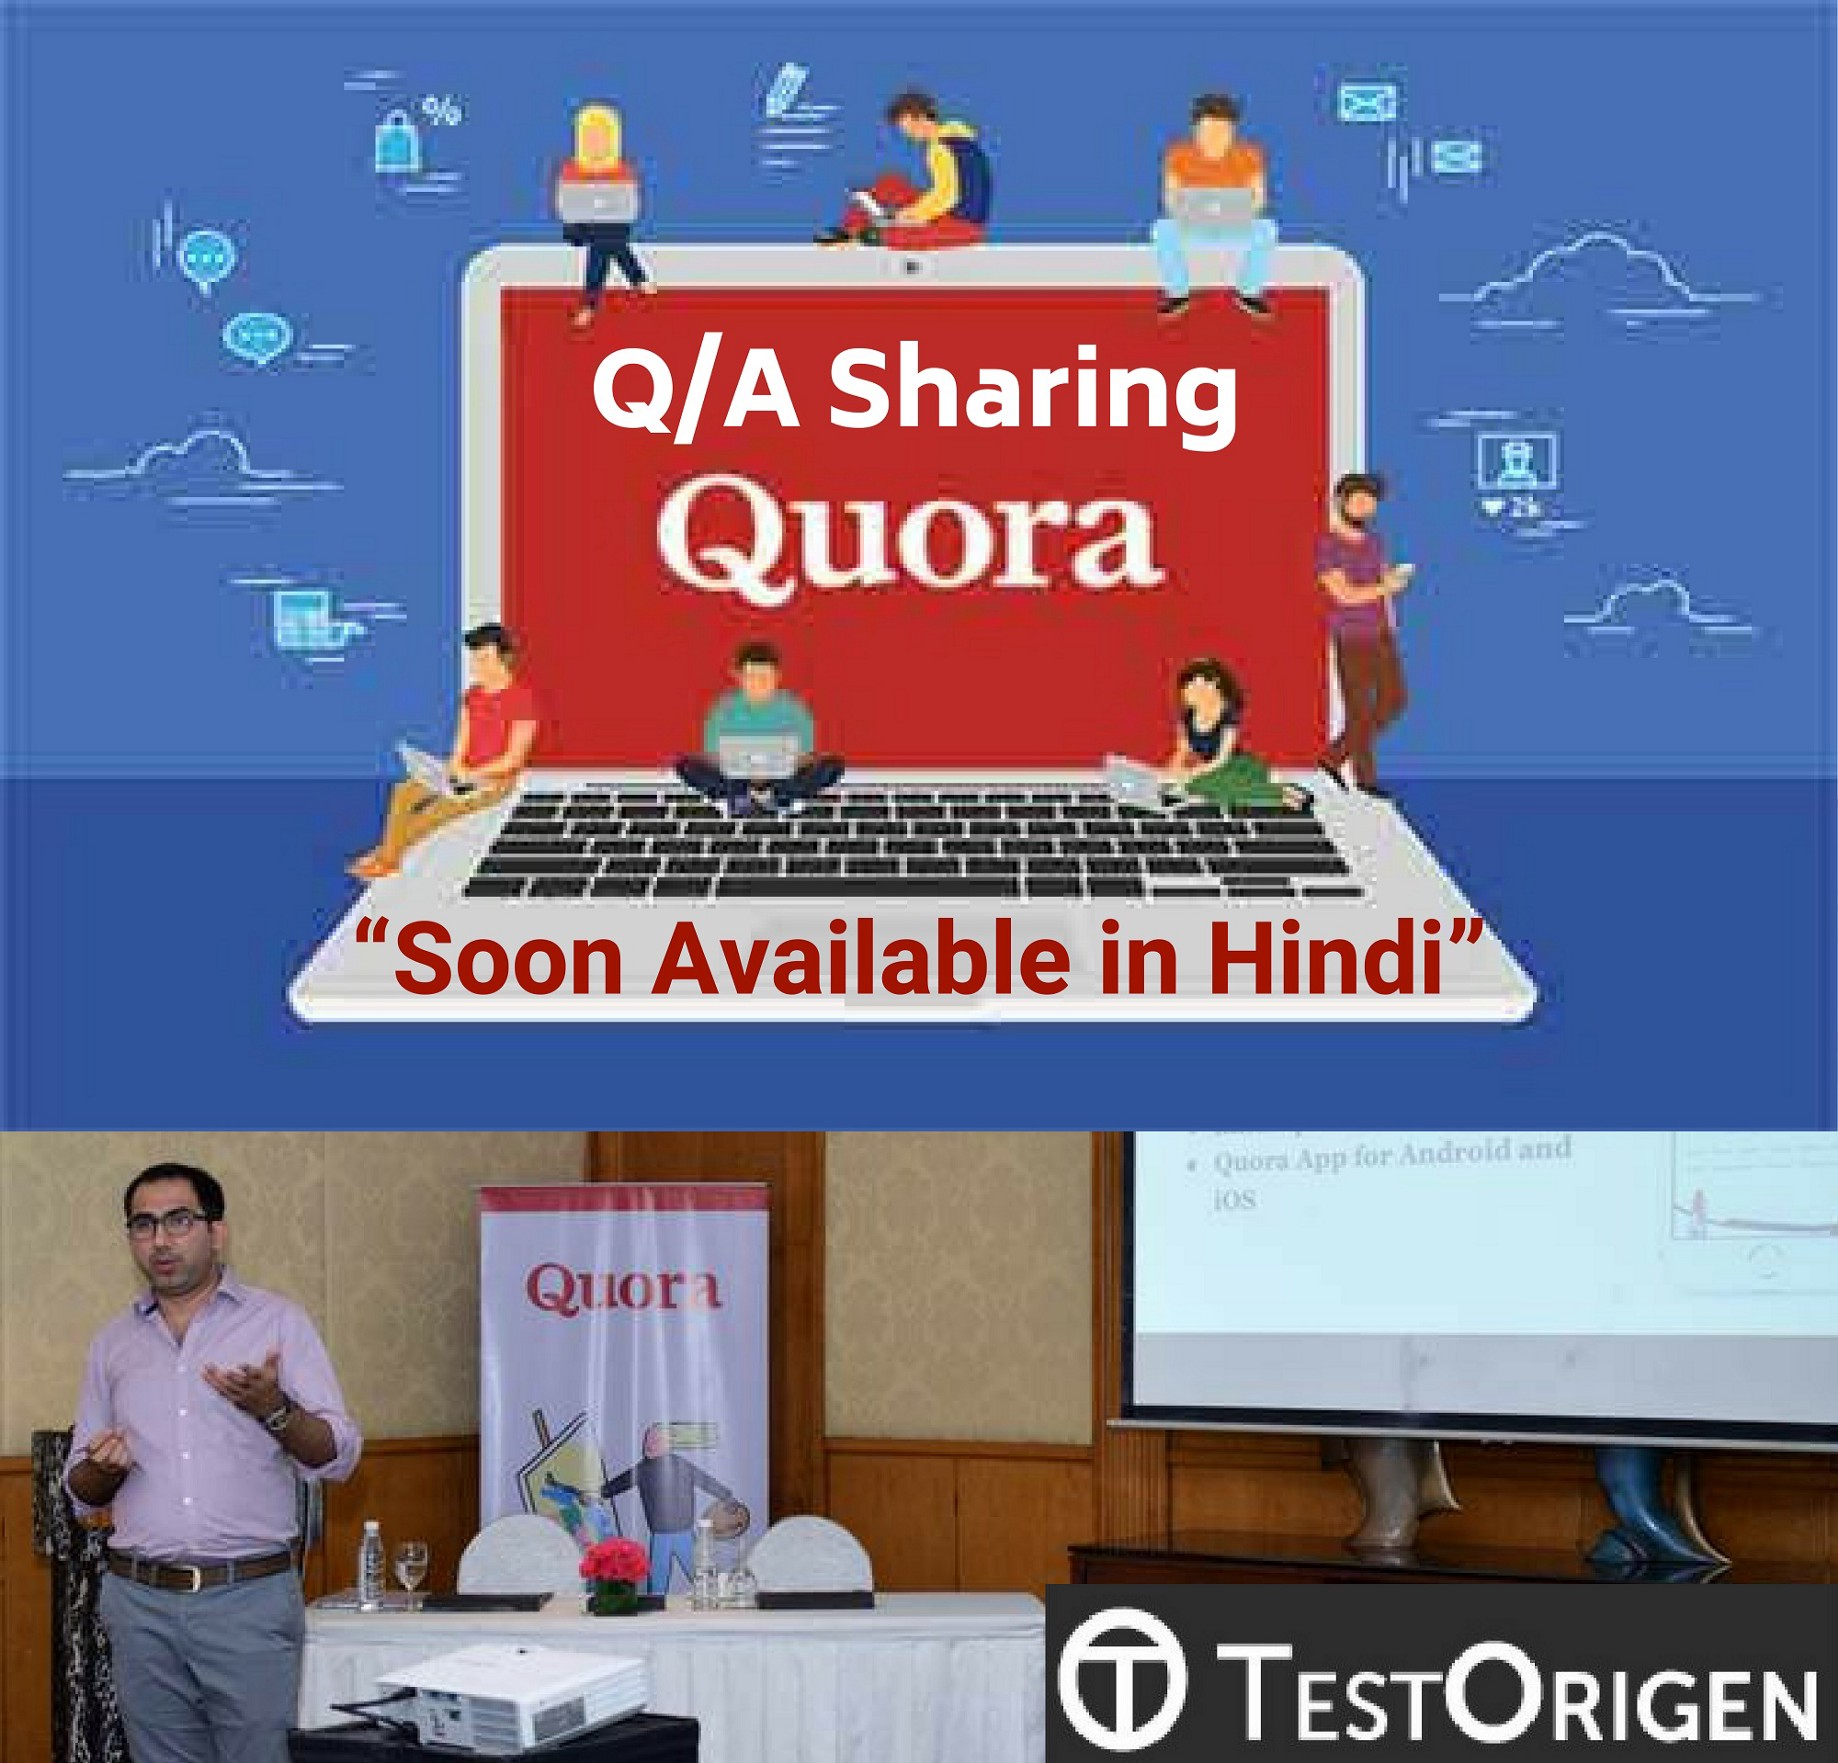 "Q/A Sharing Quora, ""Soon Available in Hindi"" - TestOrigen"